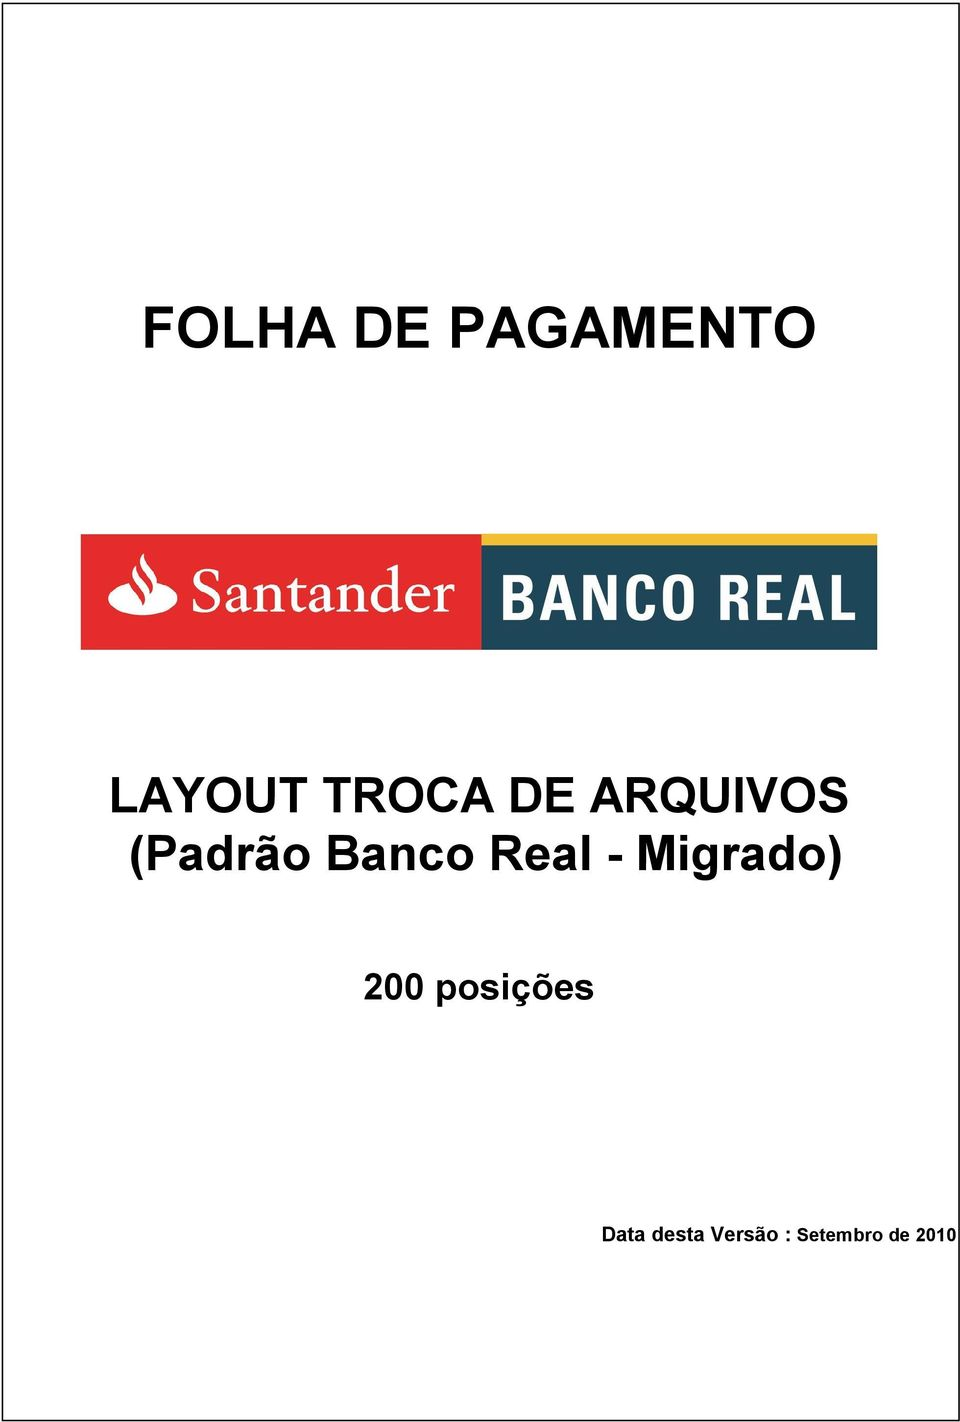 Banco Real - Migrado) 200